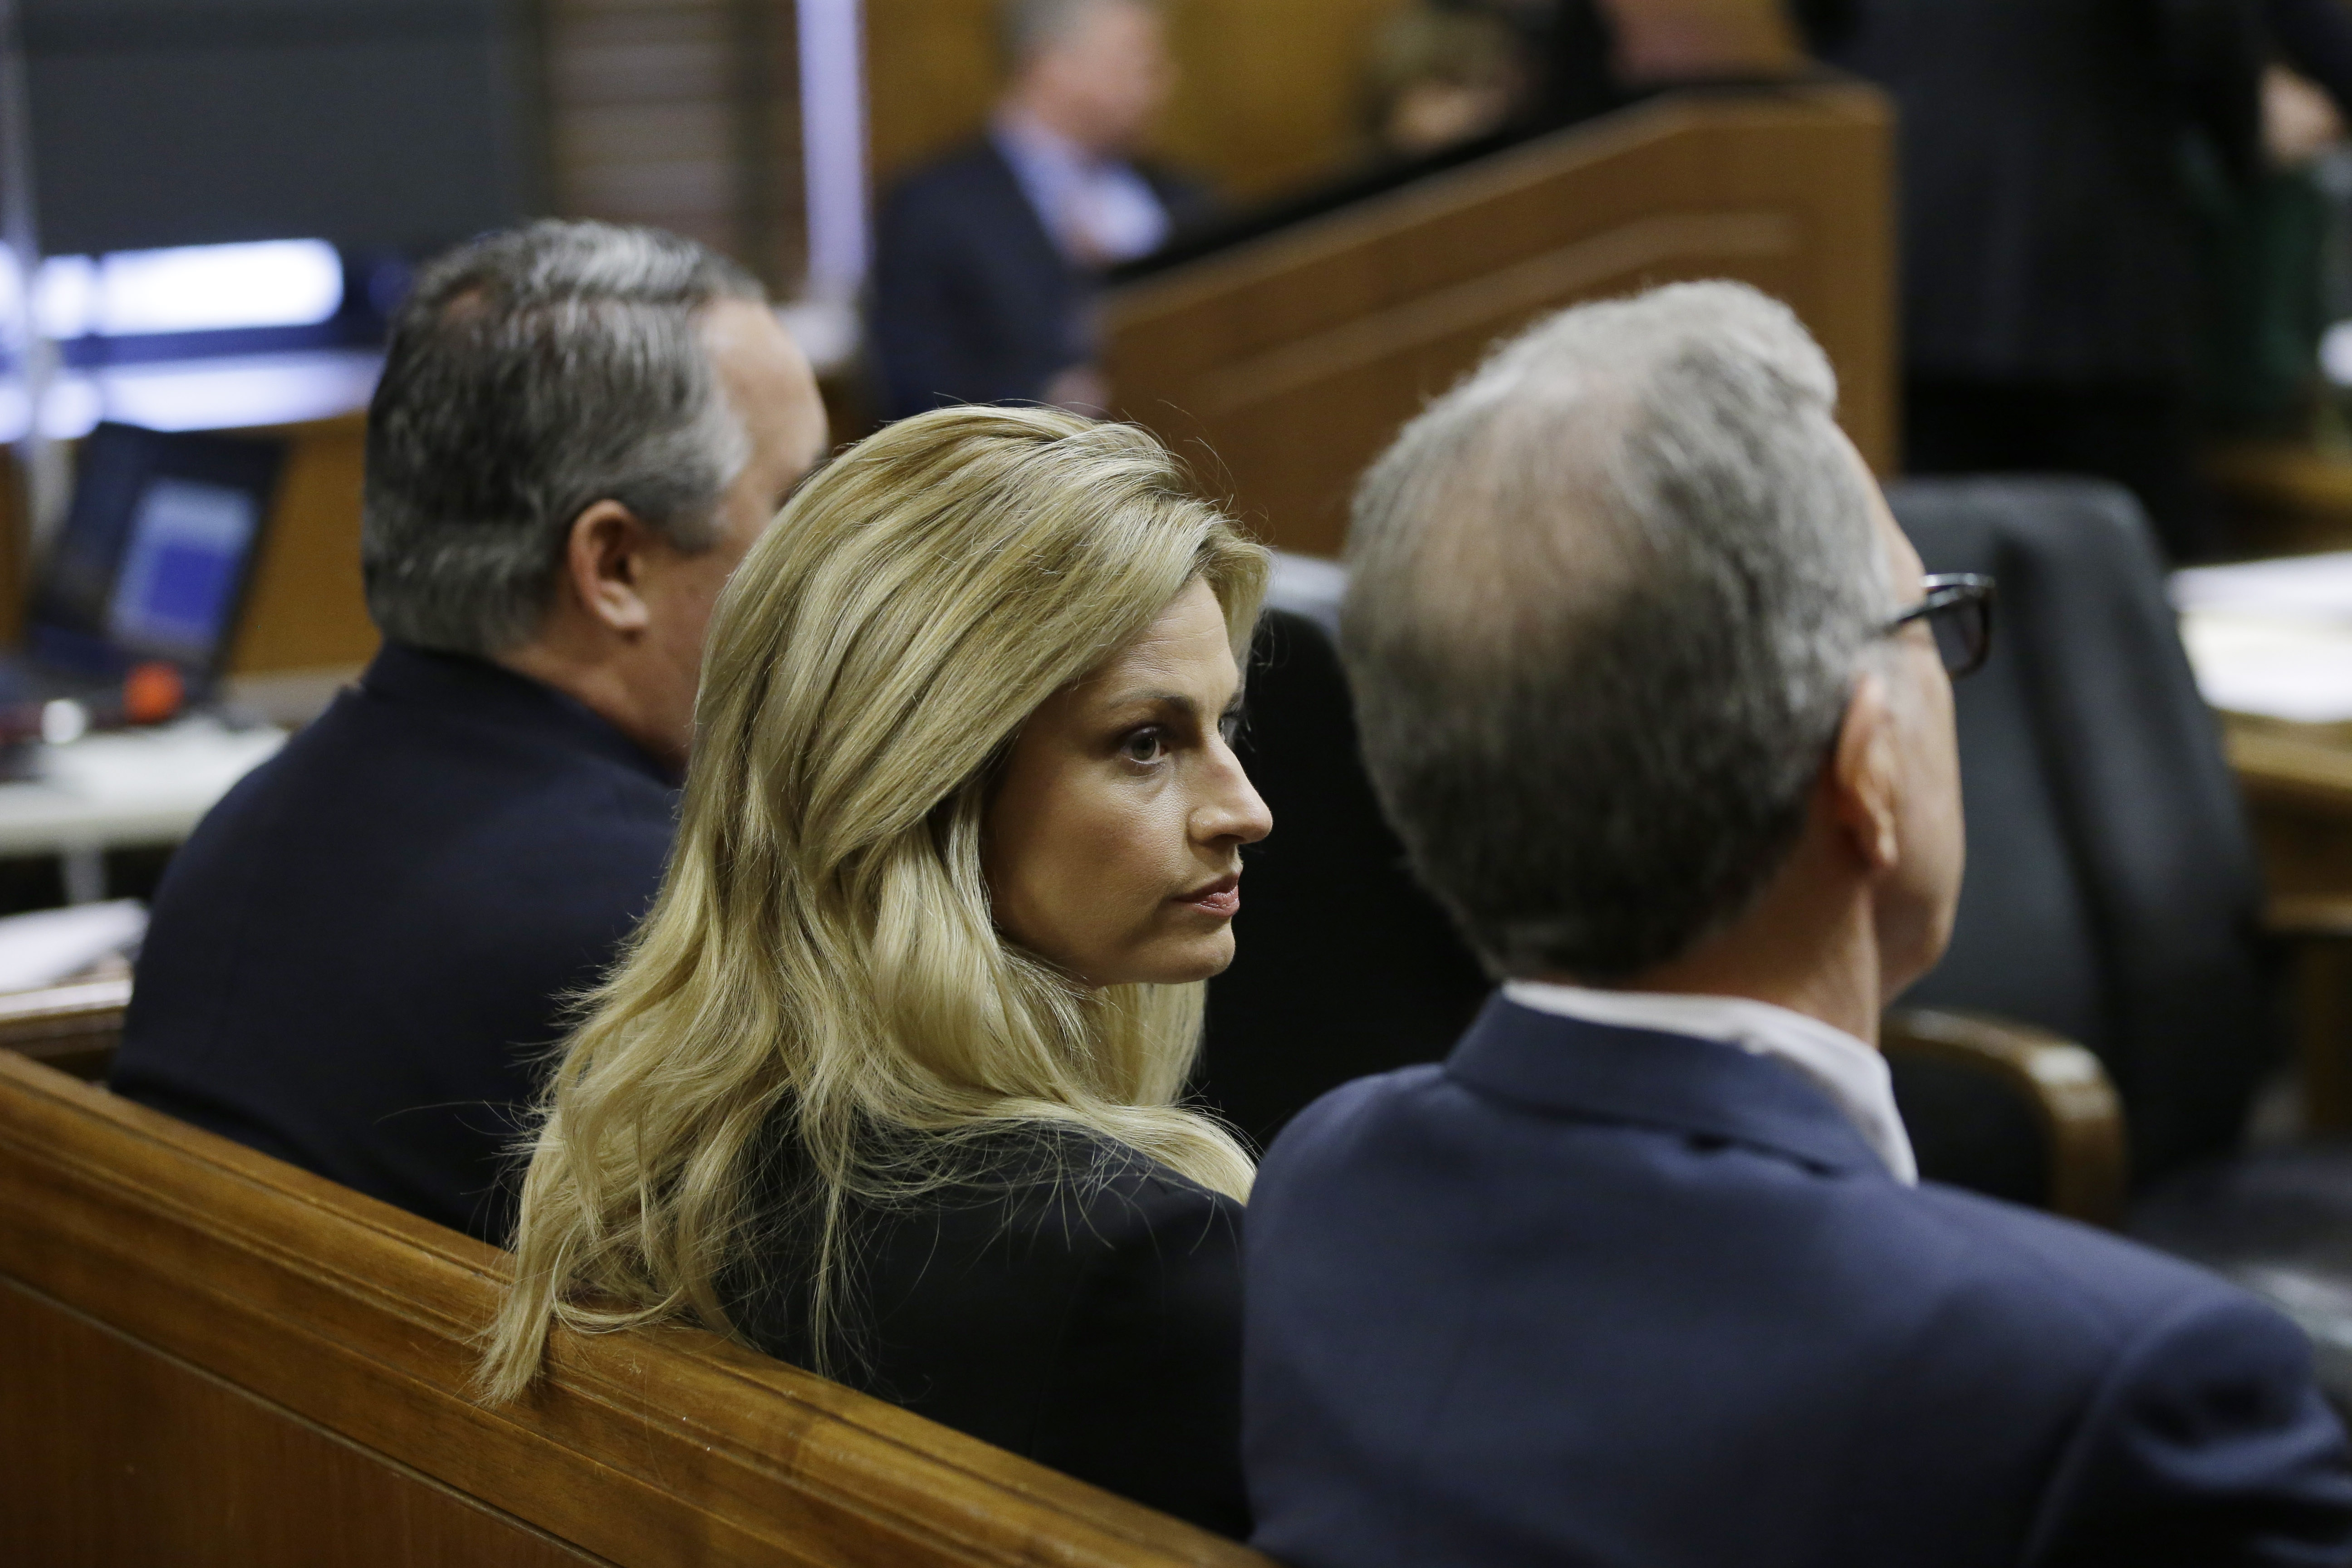 Erin Andrews originally asked for $75 million in her lawsuit, but a jury awarded her $55 million.